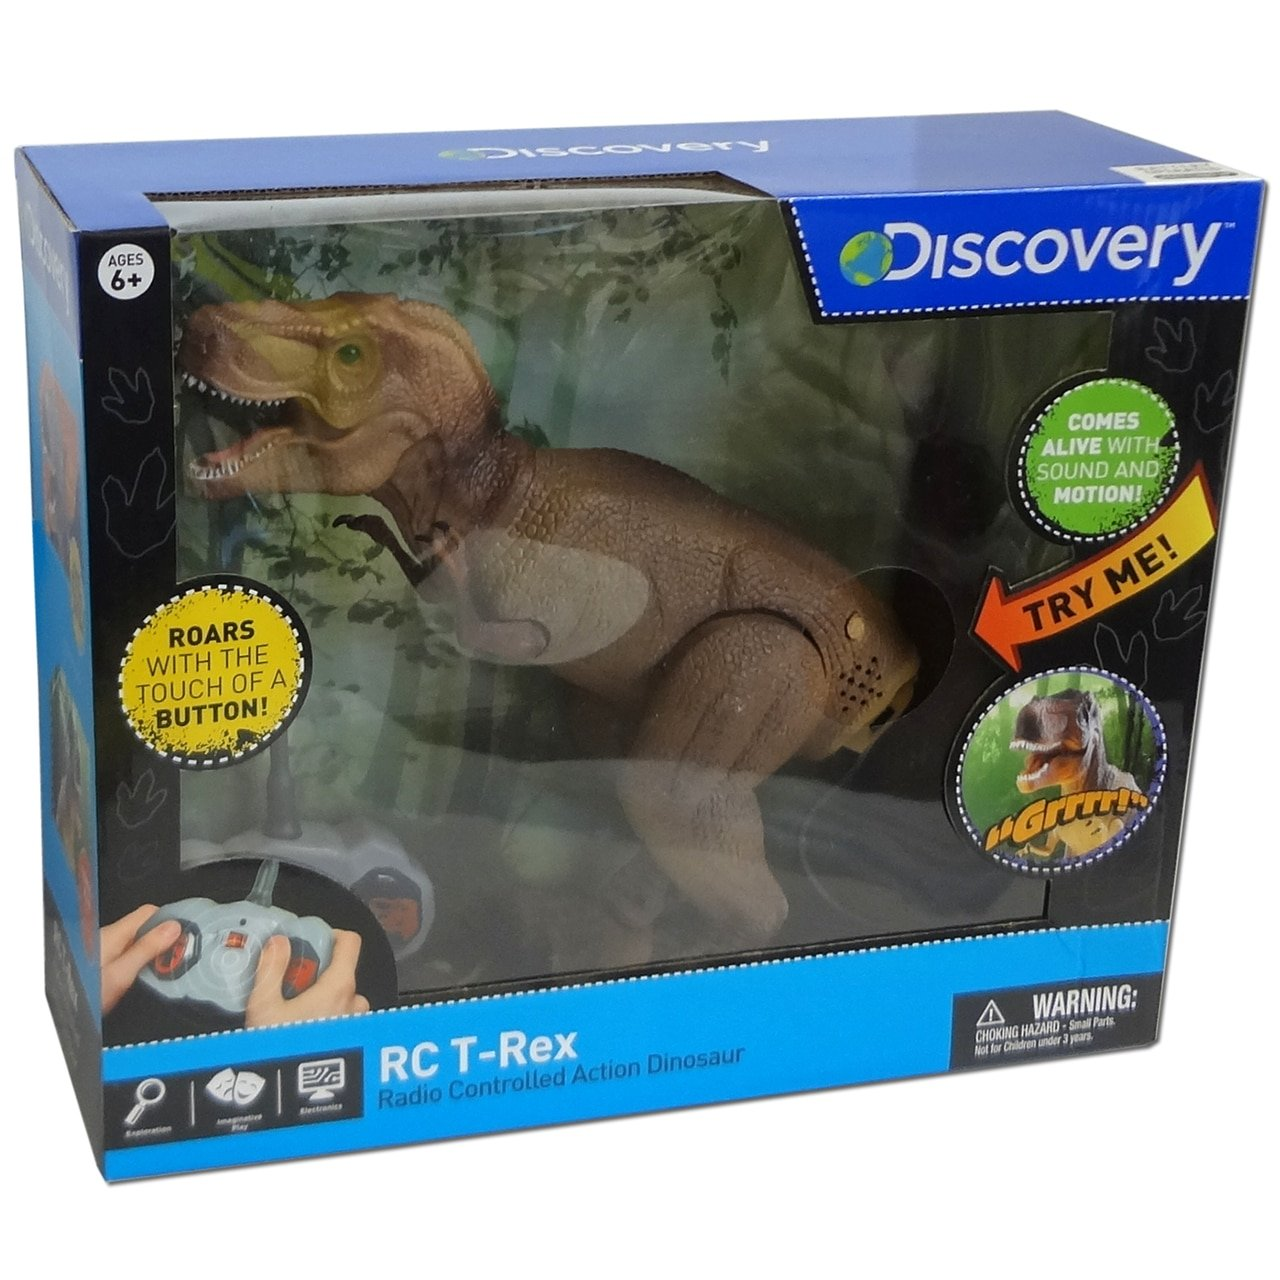 Discovery RC T Rex Radio Controlled Action Dinosaur